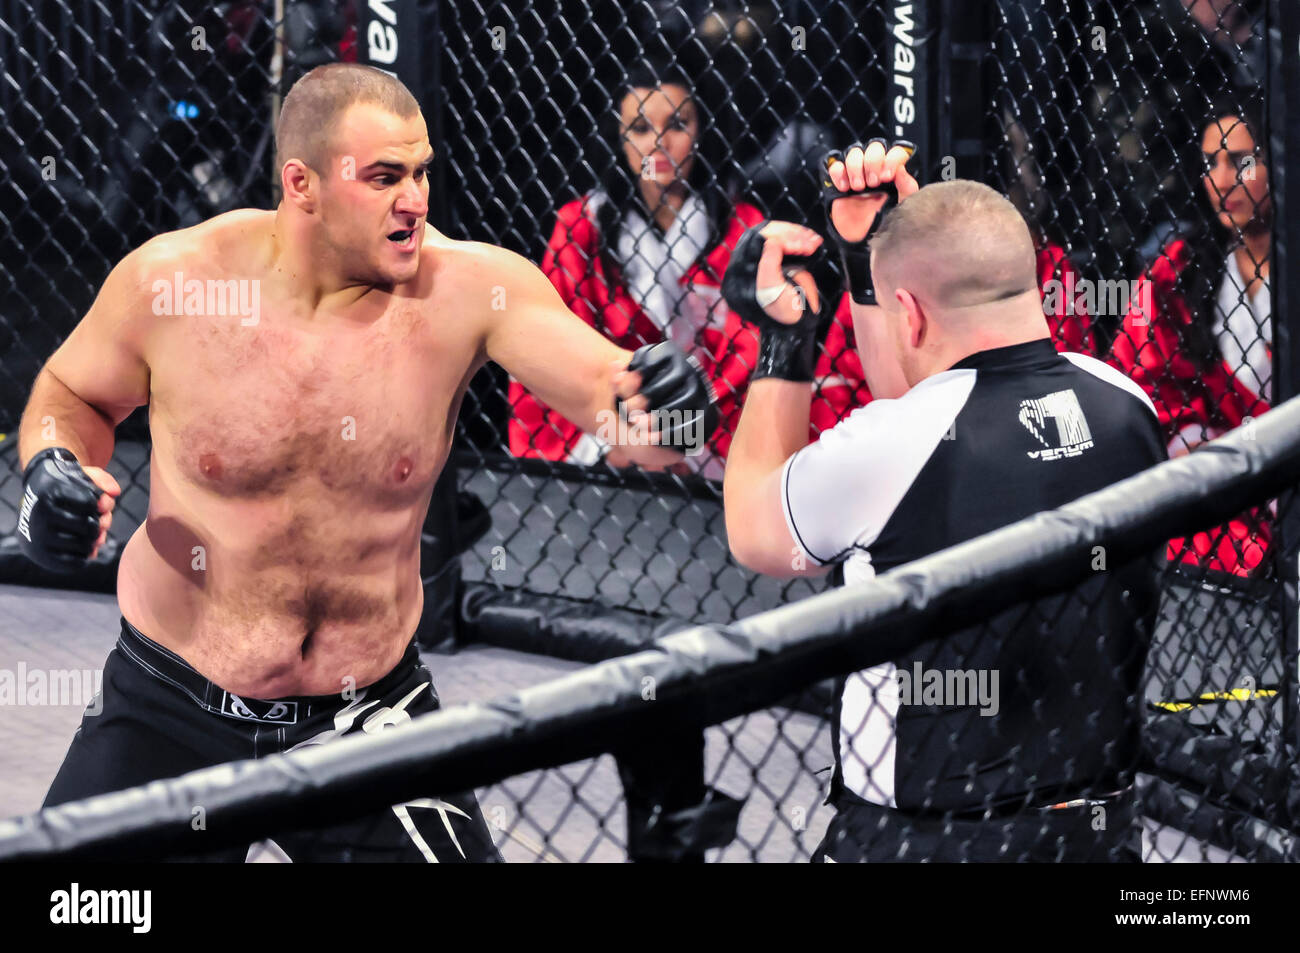 Two heavyweight MMA fighters in the ring. - Stock Image